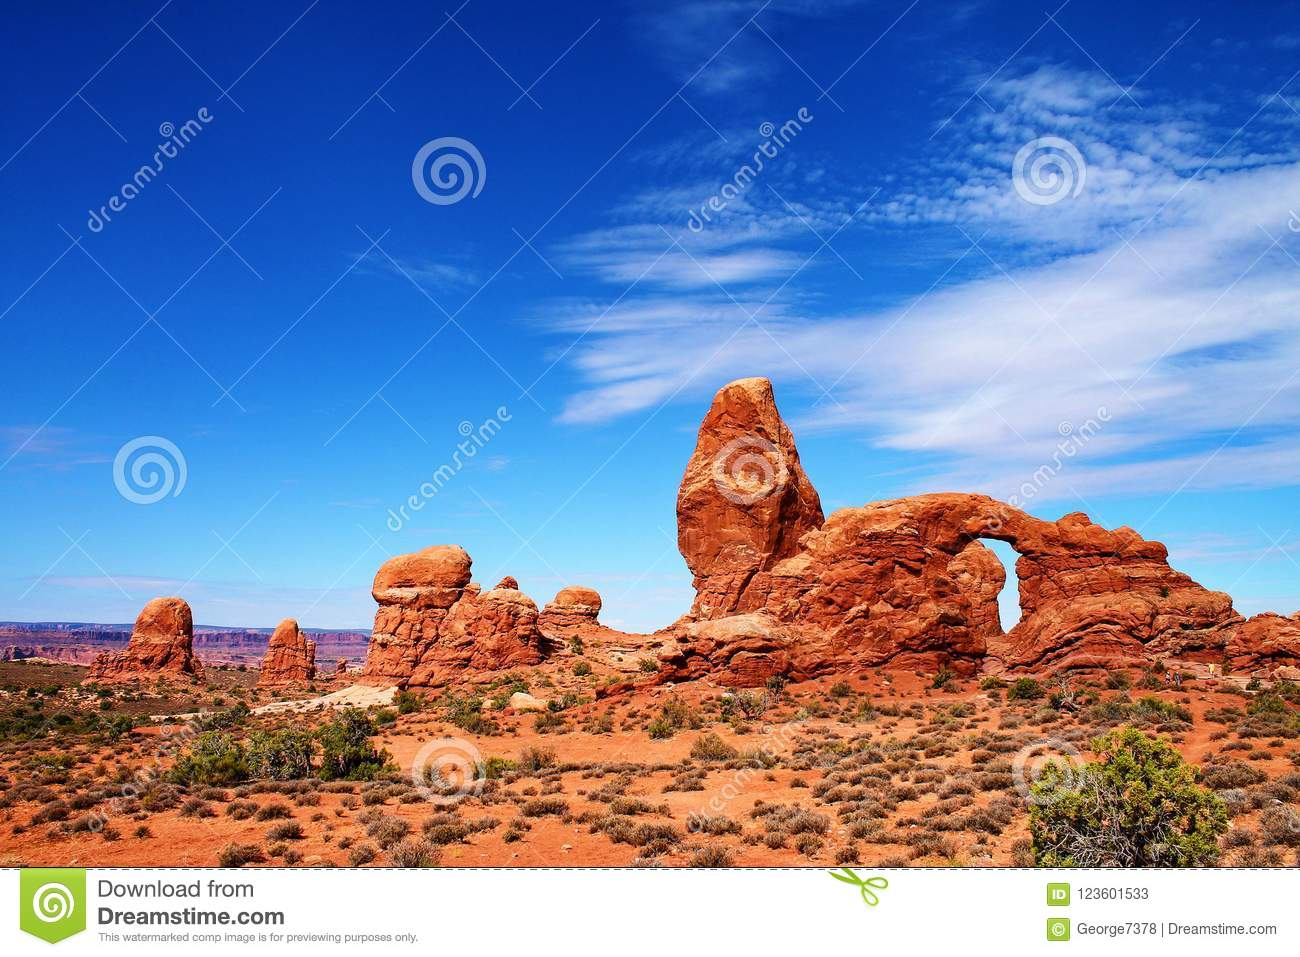 Irregular rock formations with pinnacles and arch, across a desert landscape in Utah